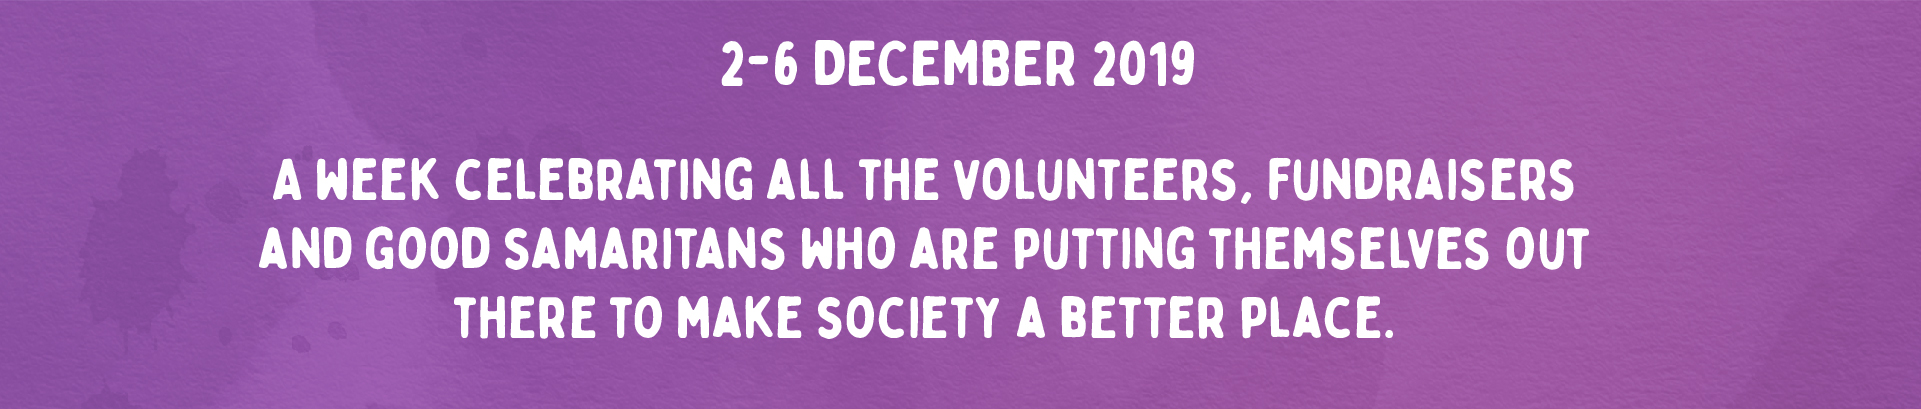 2-6 December 2019. A week celebrating all the volunteers, fundraisers and good samaritans